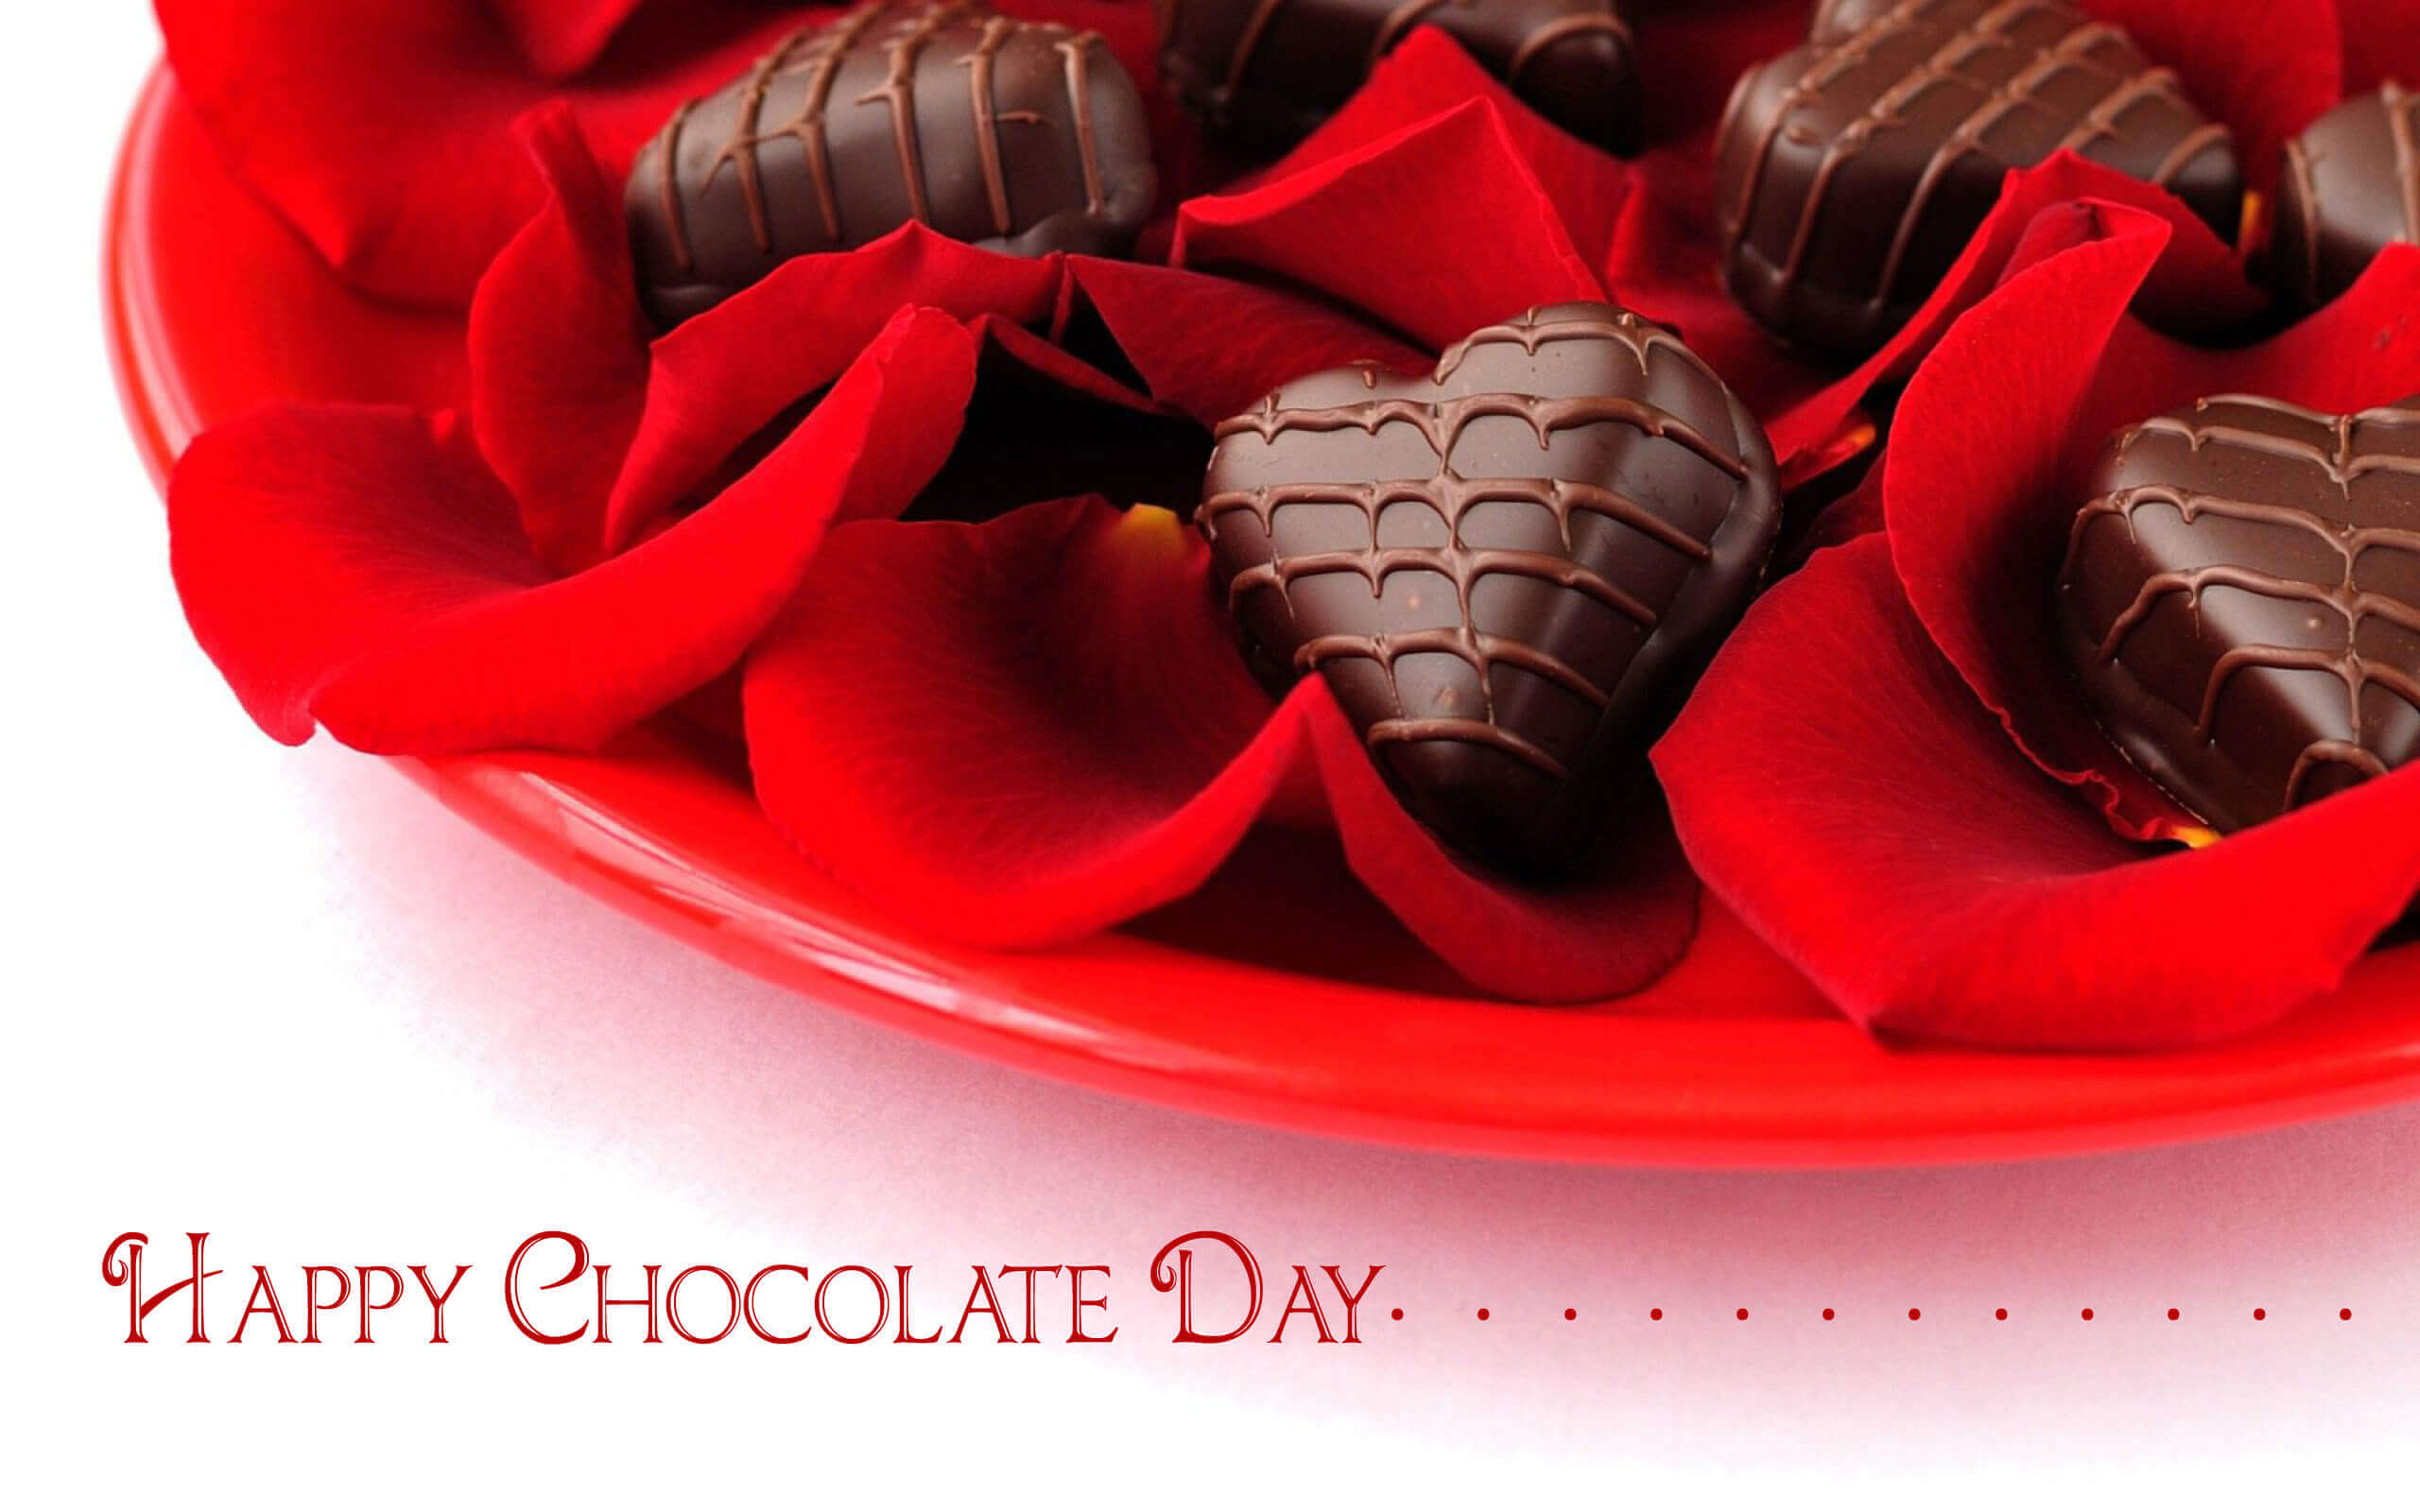 happy chocolate day heart on rose petals love graphic image hd wallpaper